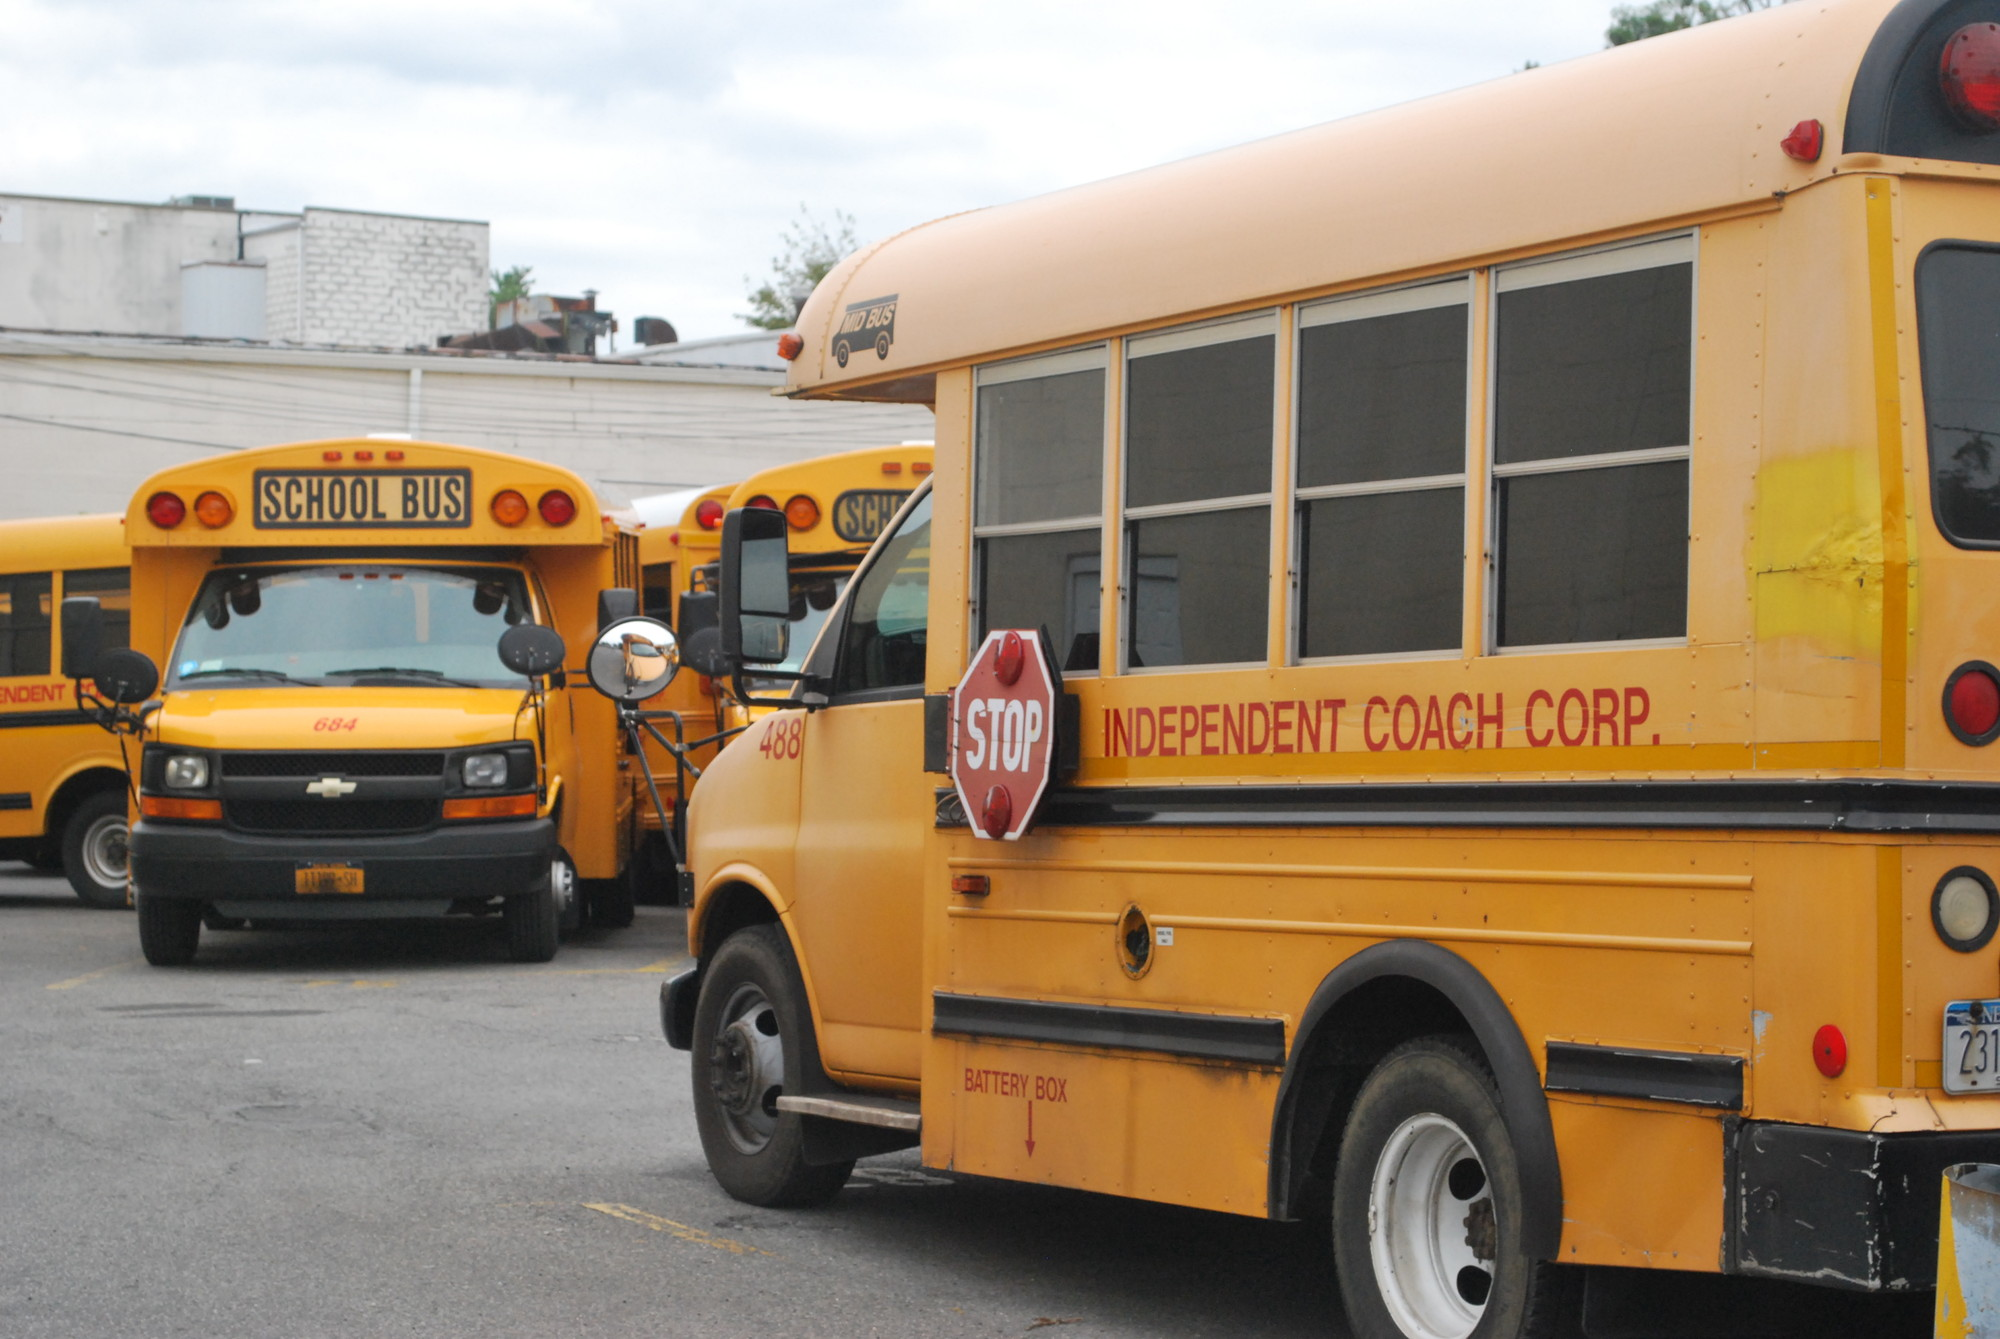 The Lawrence school district and Independent Coach sought to shorten the bus rides of yeshiva students traveling to schools across Long Island.